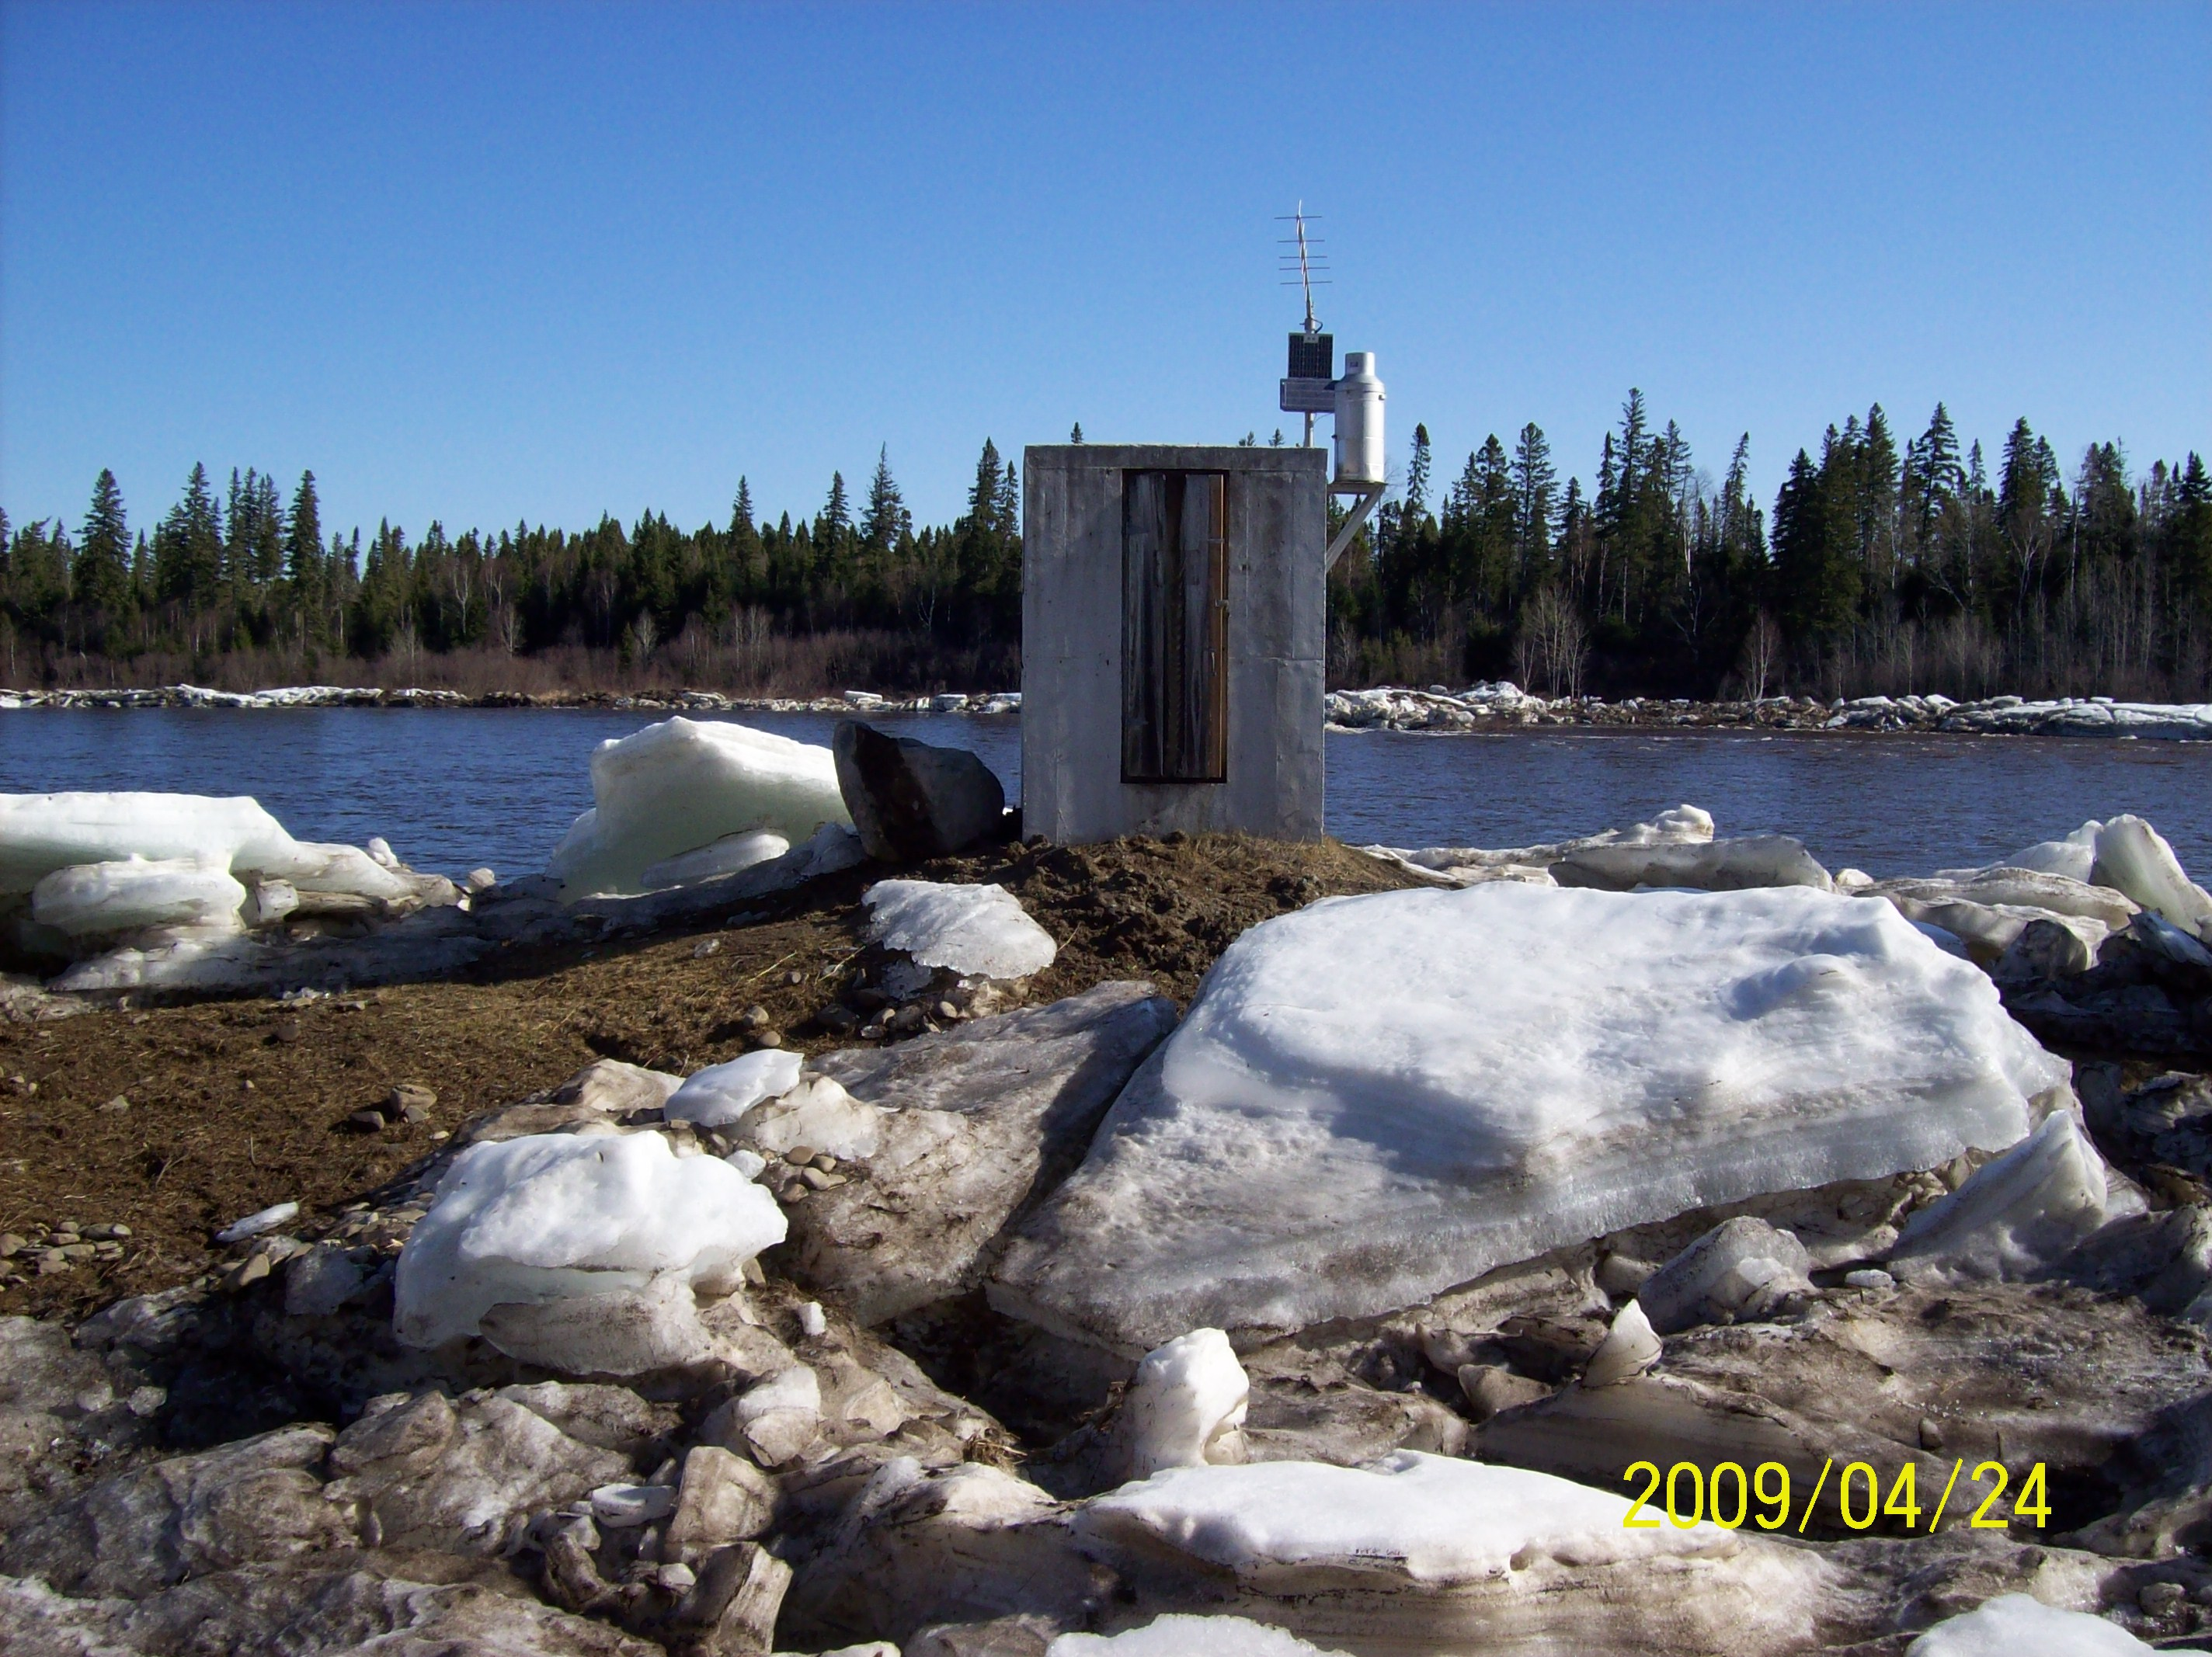 The gage house surrounded by ice chunks in late April.